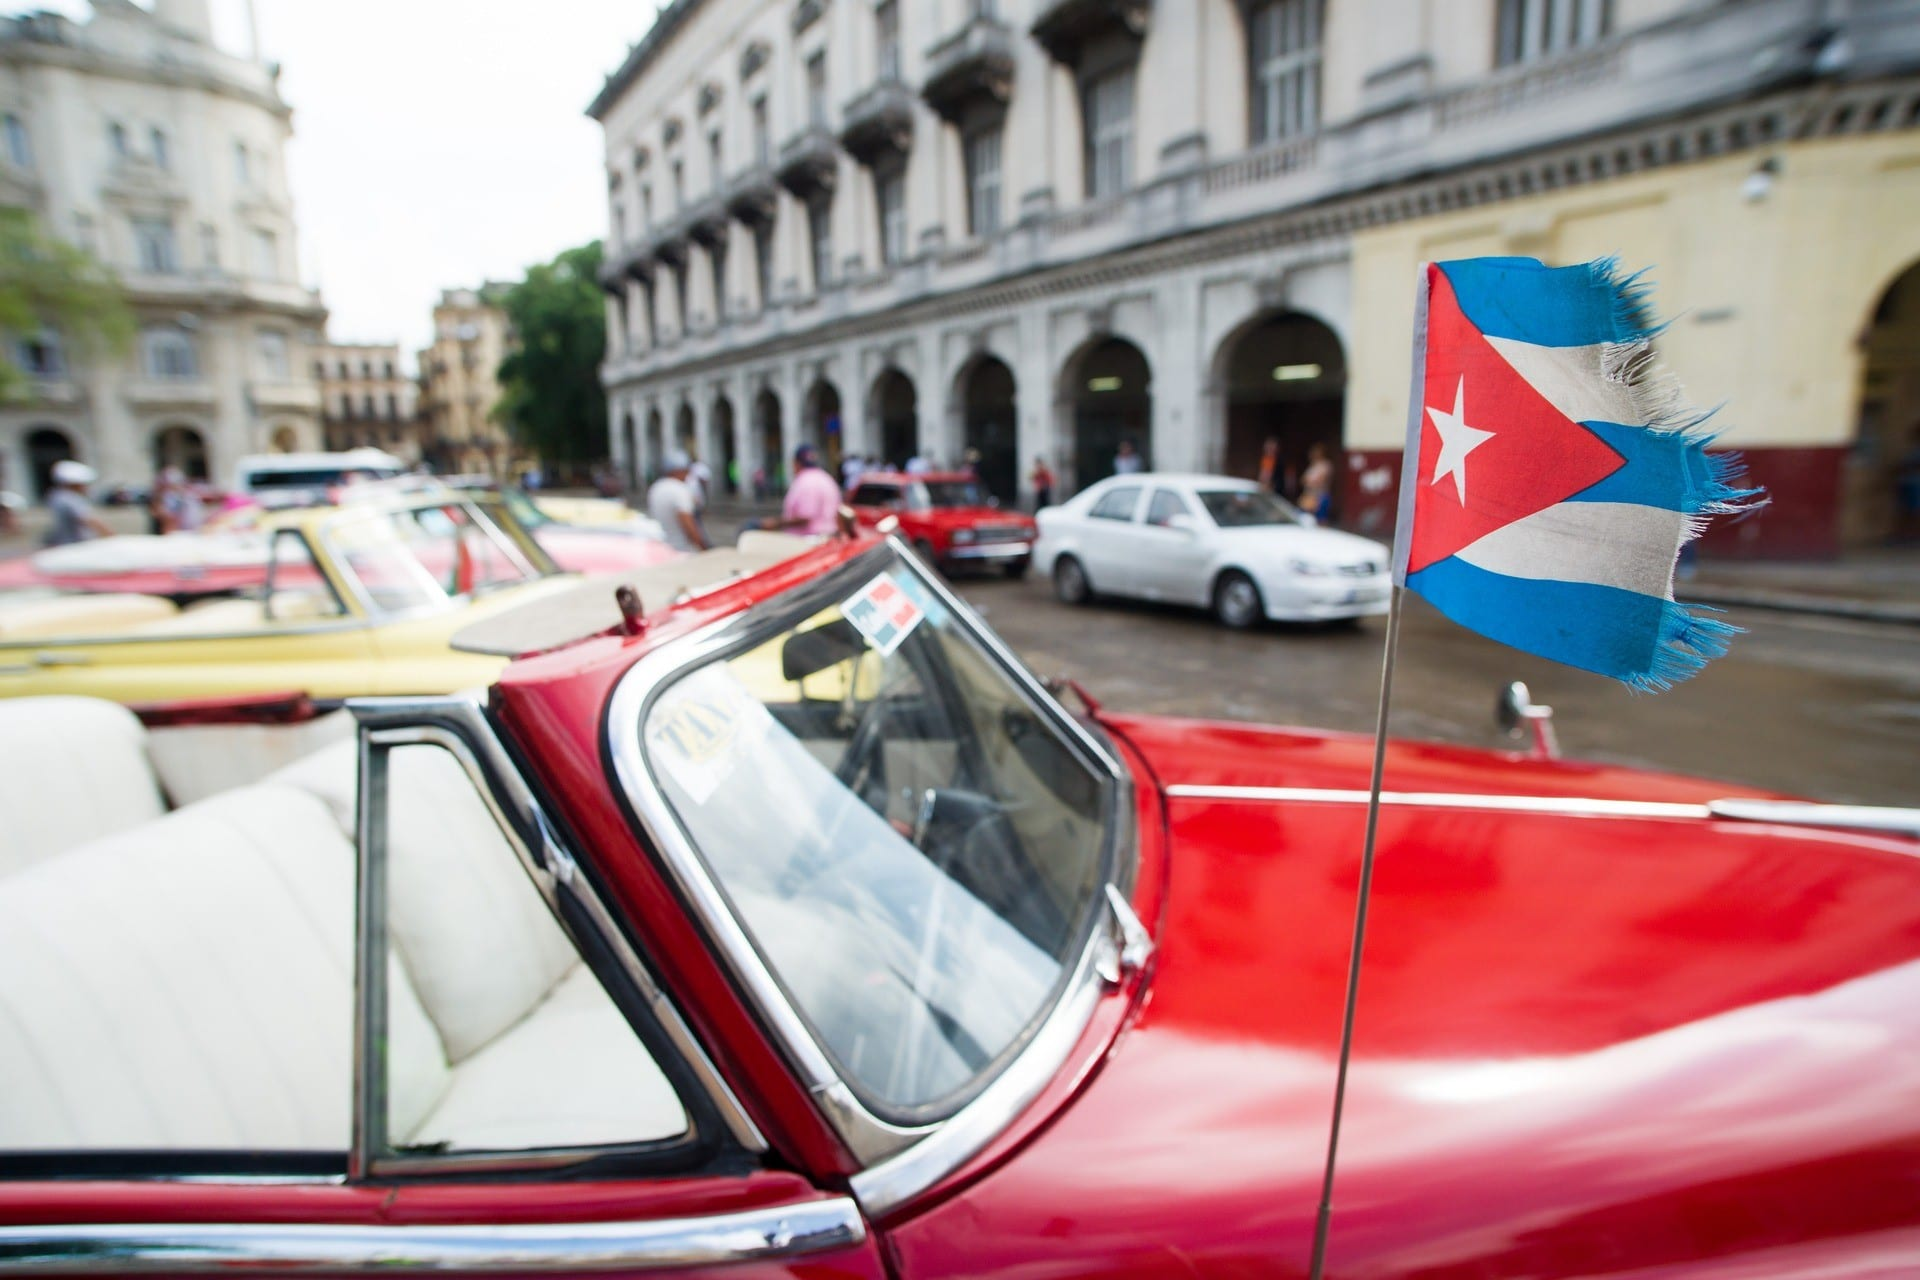 What the new Cuba regulations mean for you